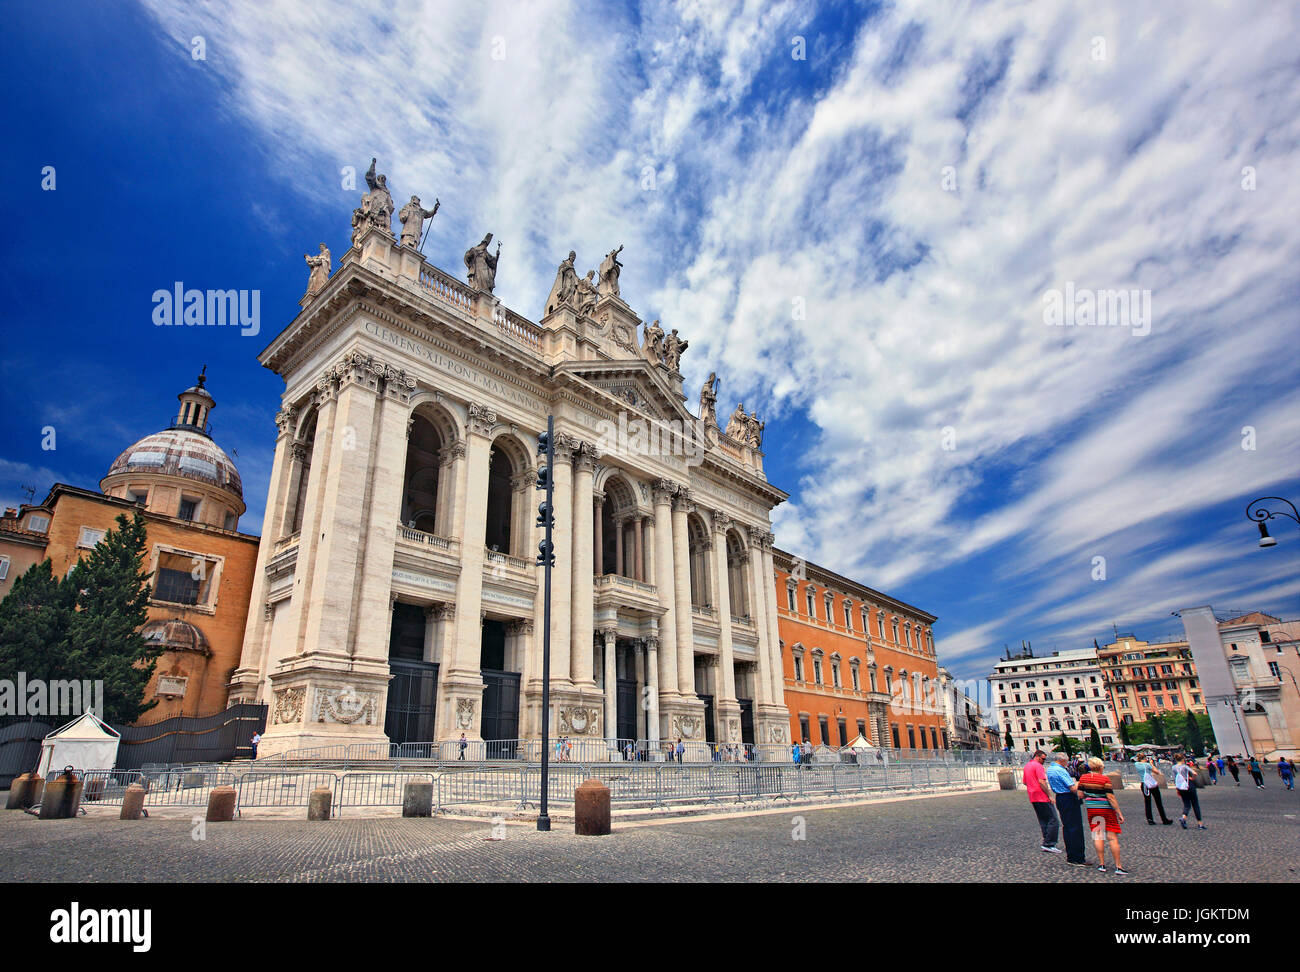 The imposing facade of the Arcibasilica di San Giovanni in Laterano (Archbasilica of St. John in Lateran), Rome, - Stock Image